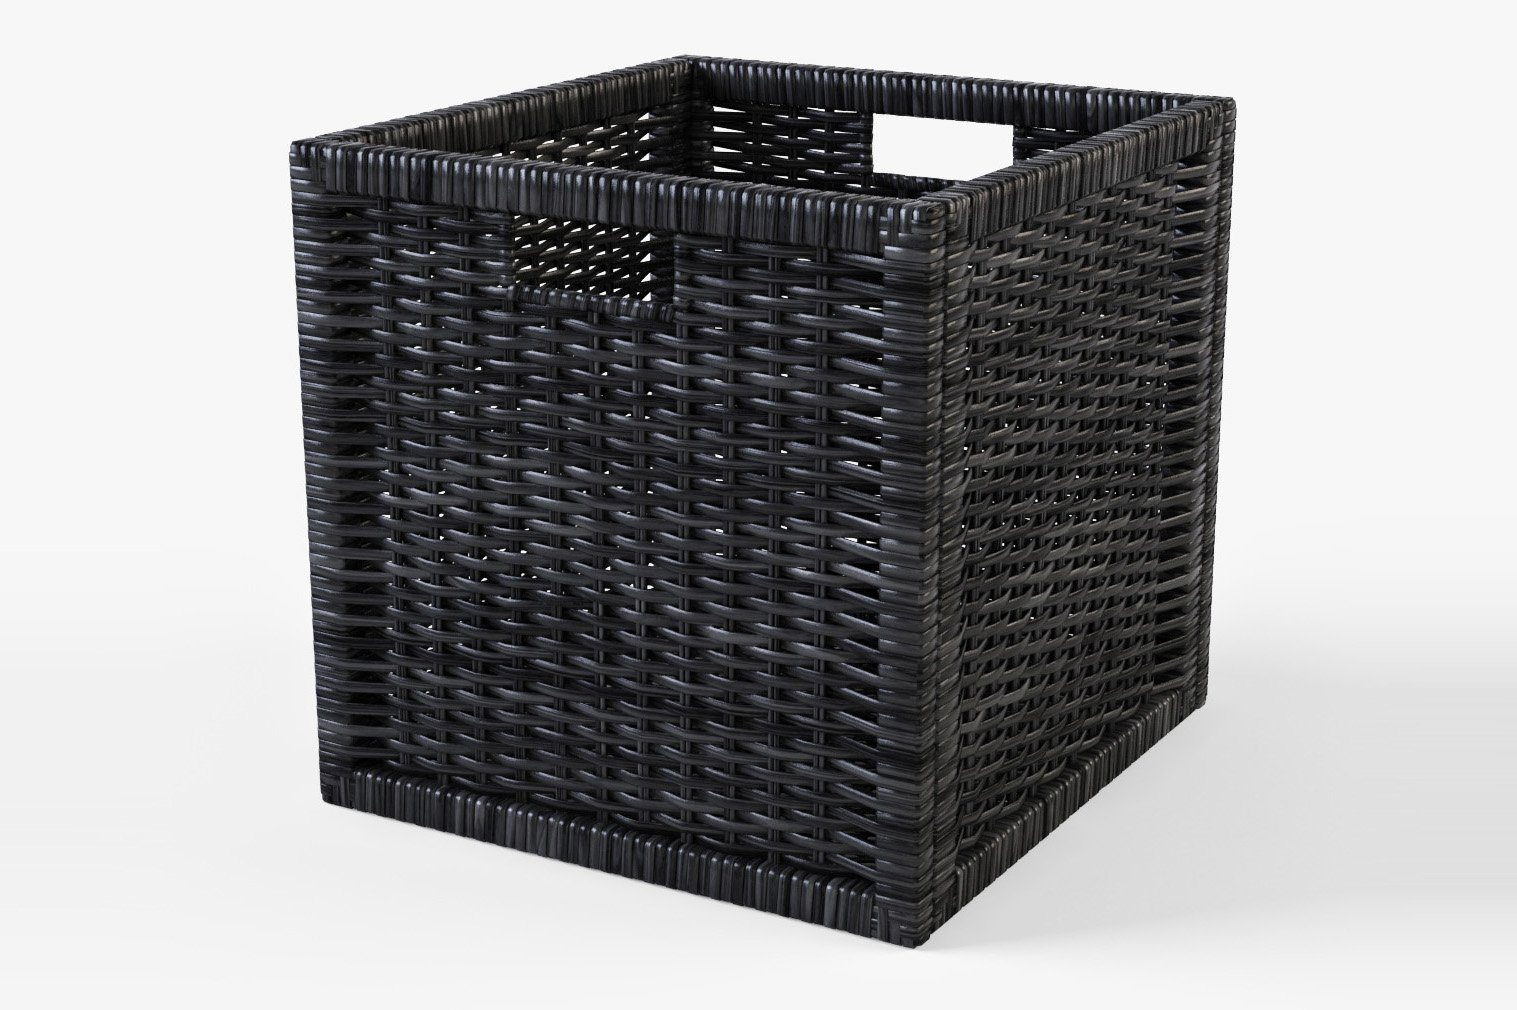 rattan basket ikea branas black objects creative market. Black Bedroom Furniture Sets. Home Design Ideas